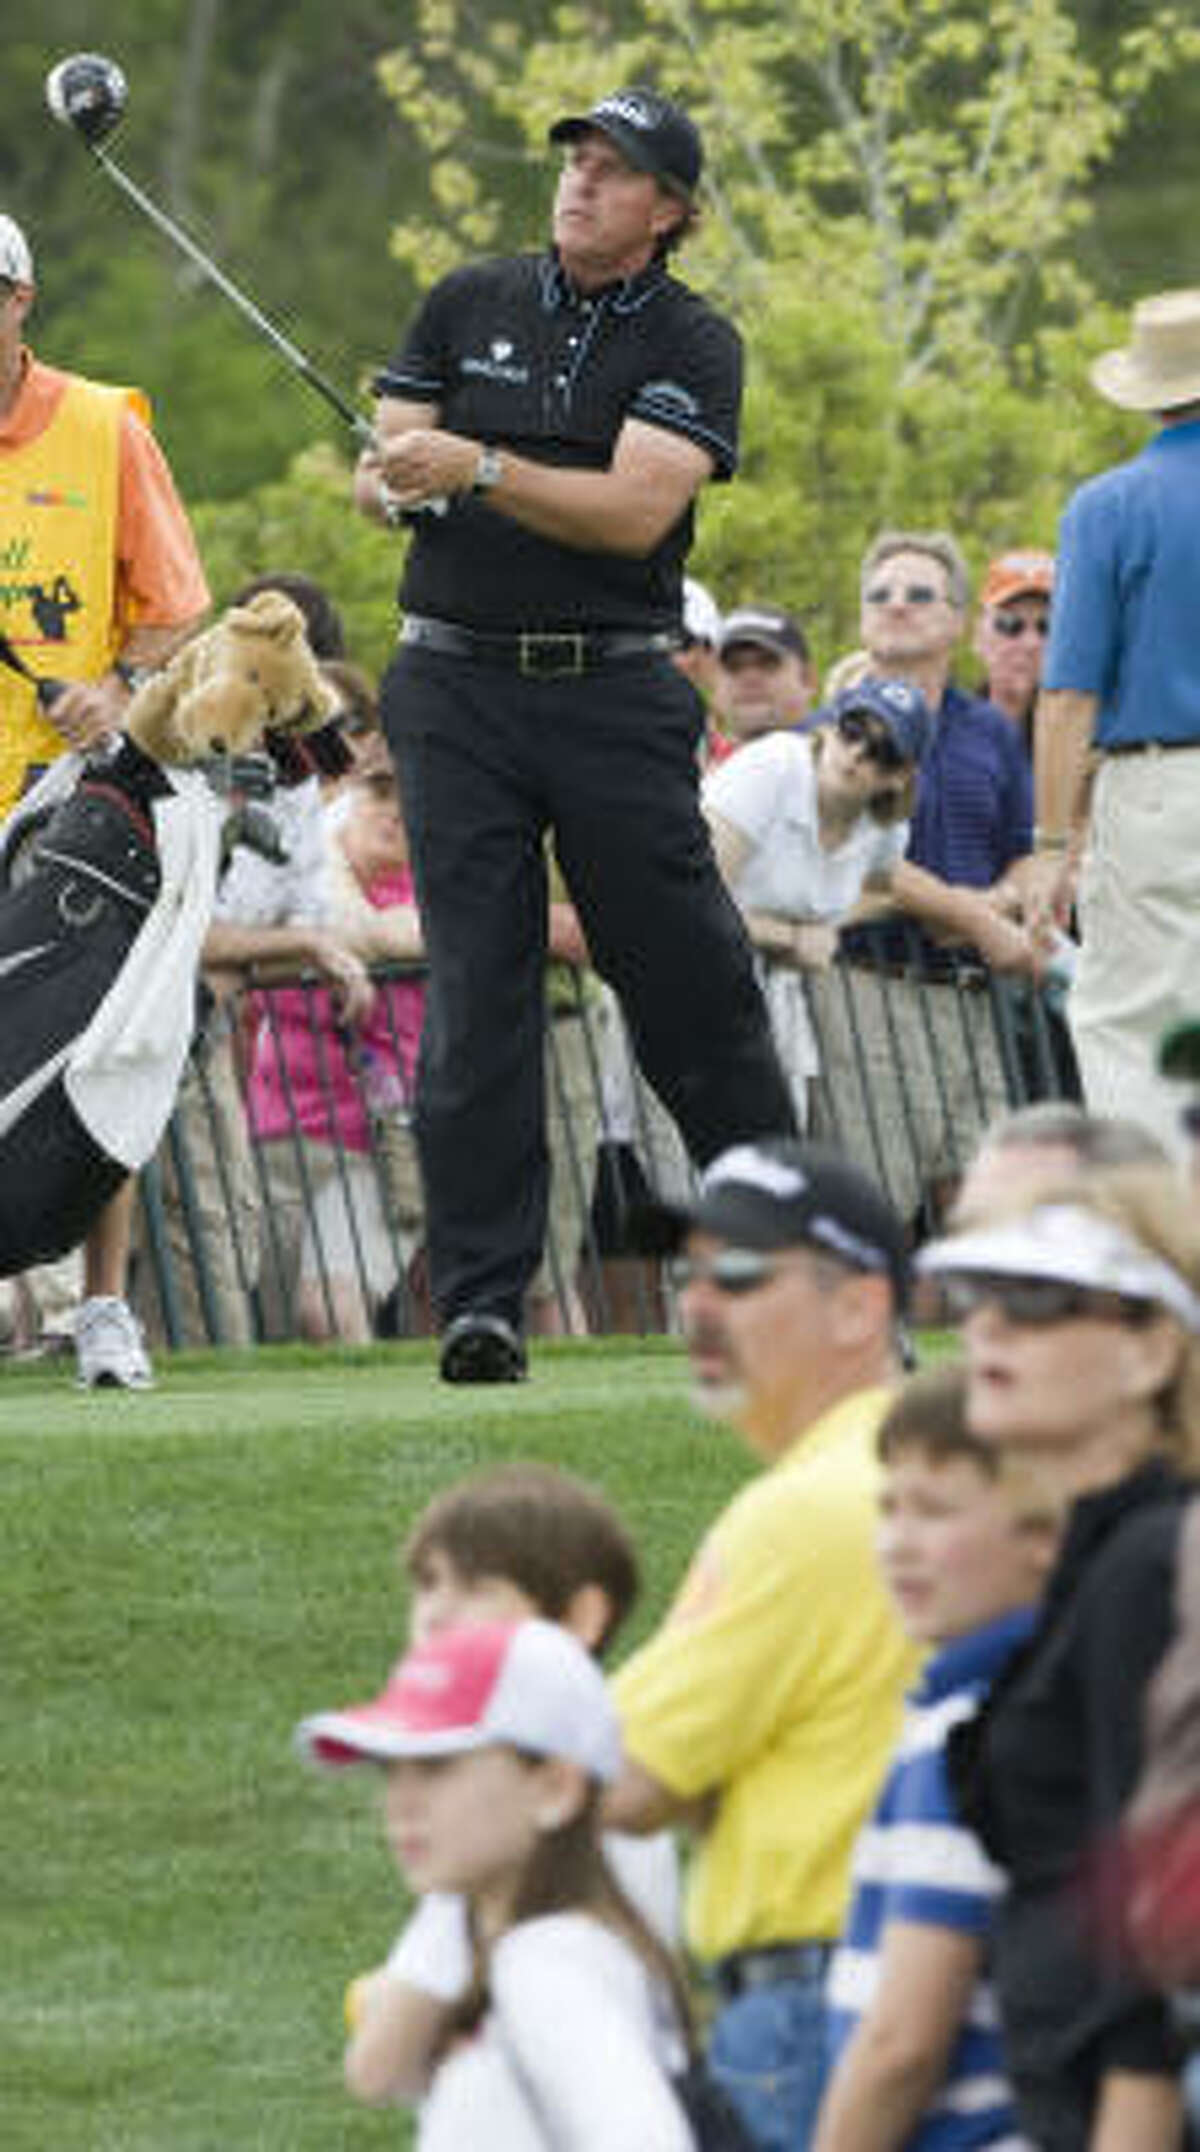 Phil Mickelson watches his tee shot on No. 18 during the second round. He made par on the hole to finish the round at 4 over.